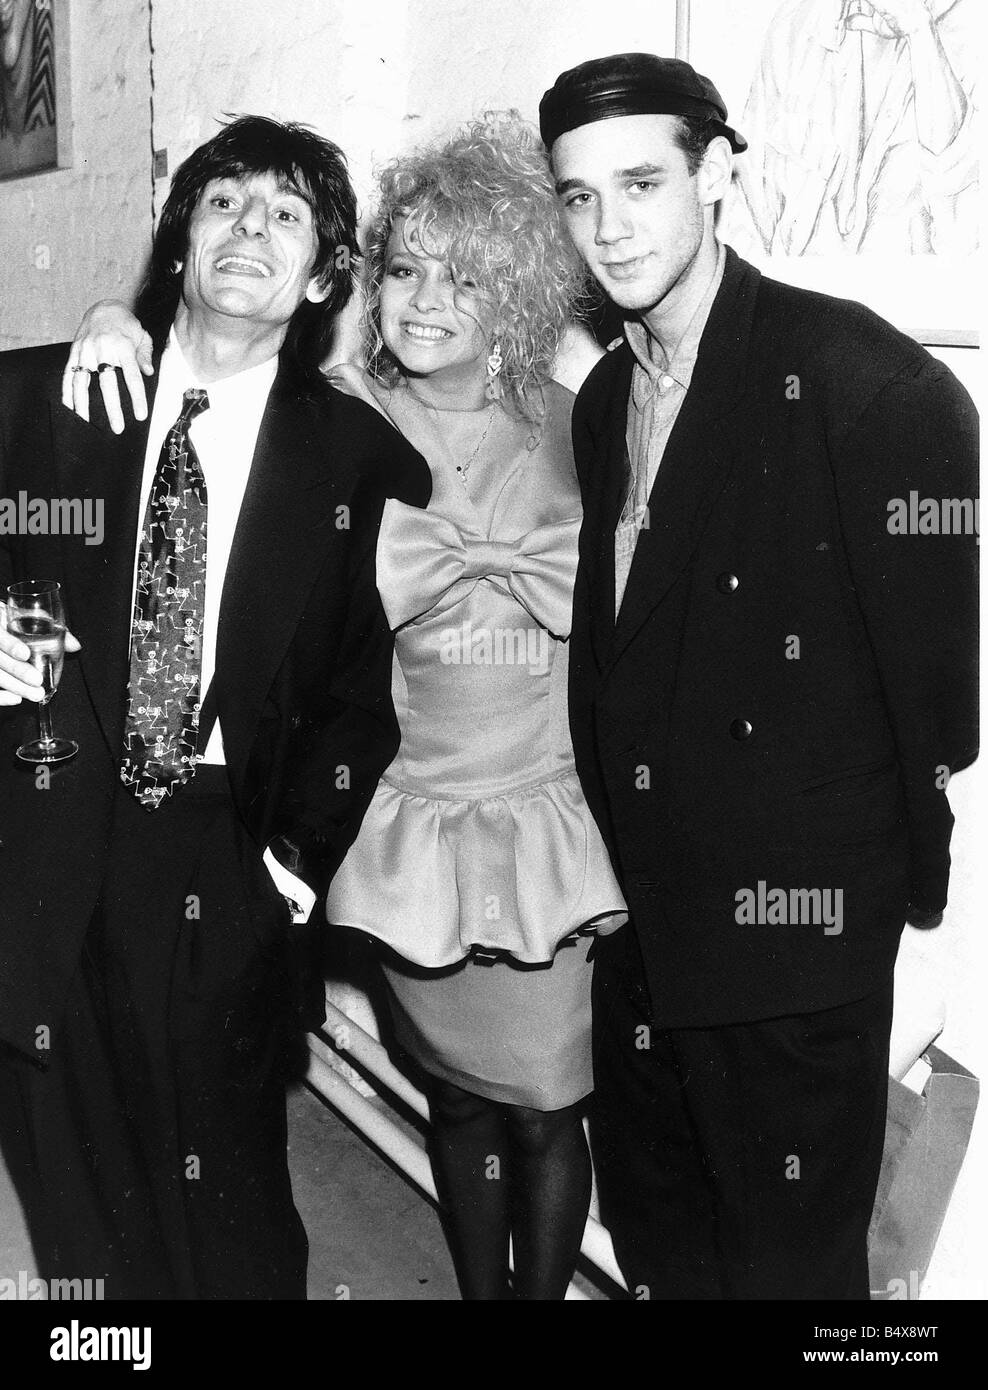 Curiosity Killed The Cat pop group singer Ben Volpeliere Pierrot R with Ronnie Wood and wife Jo 1987 - Stock Image